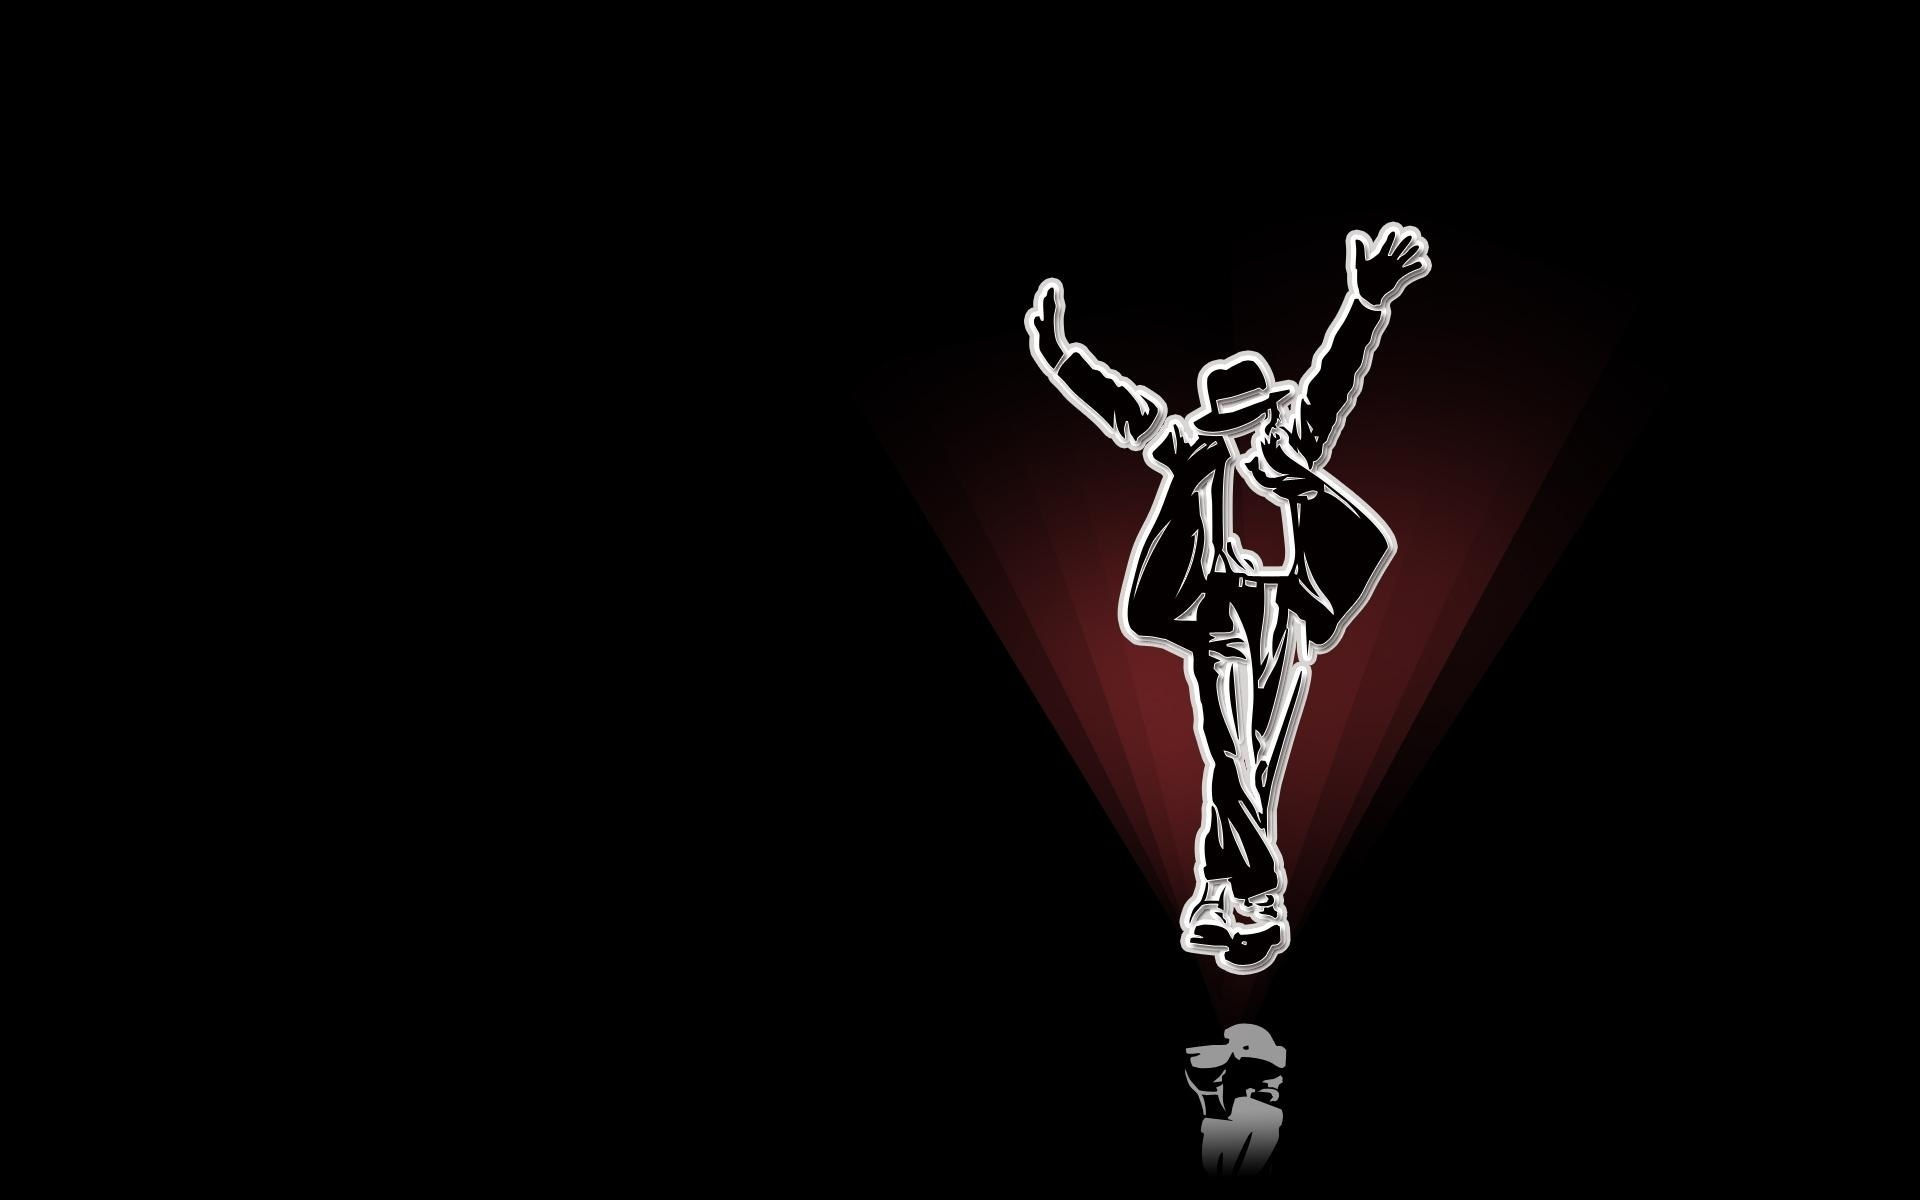 Michael Jackson Wallpaper 021